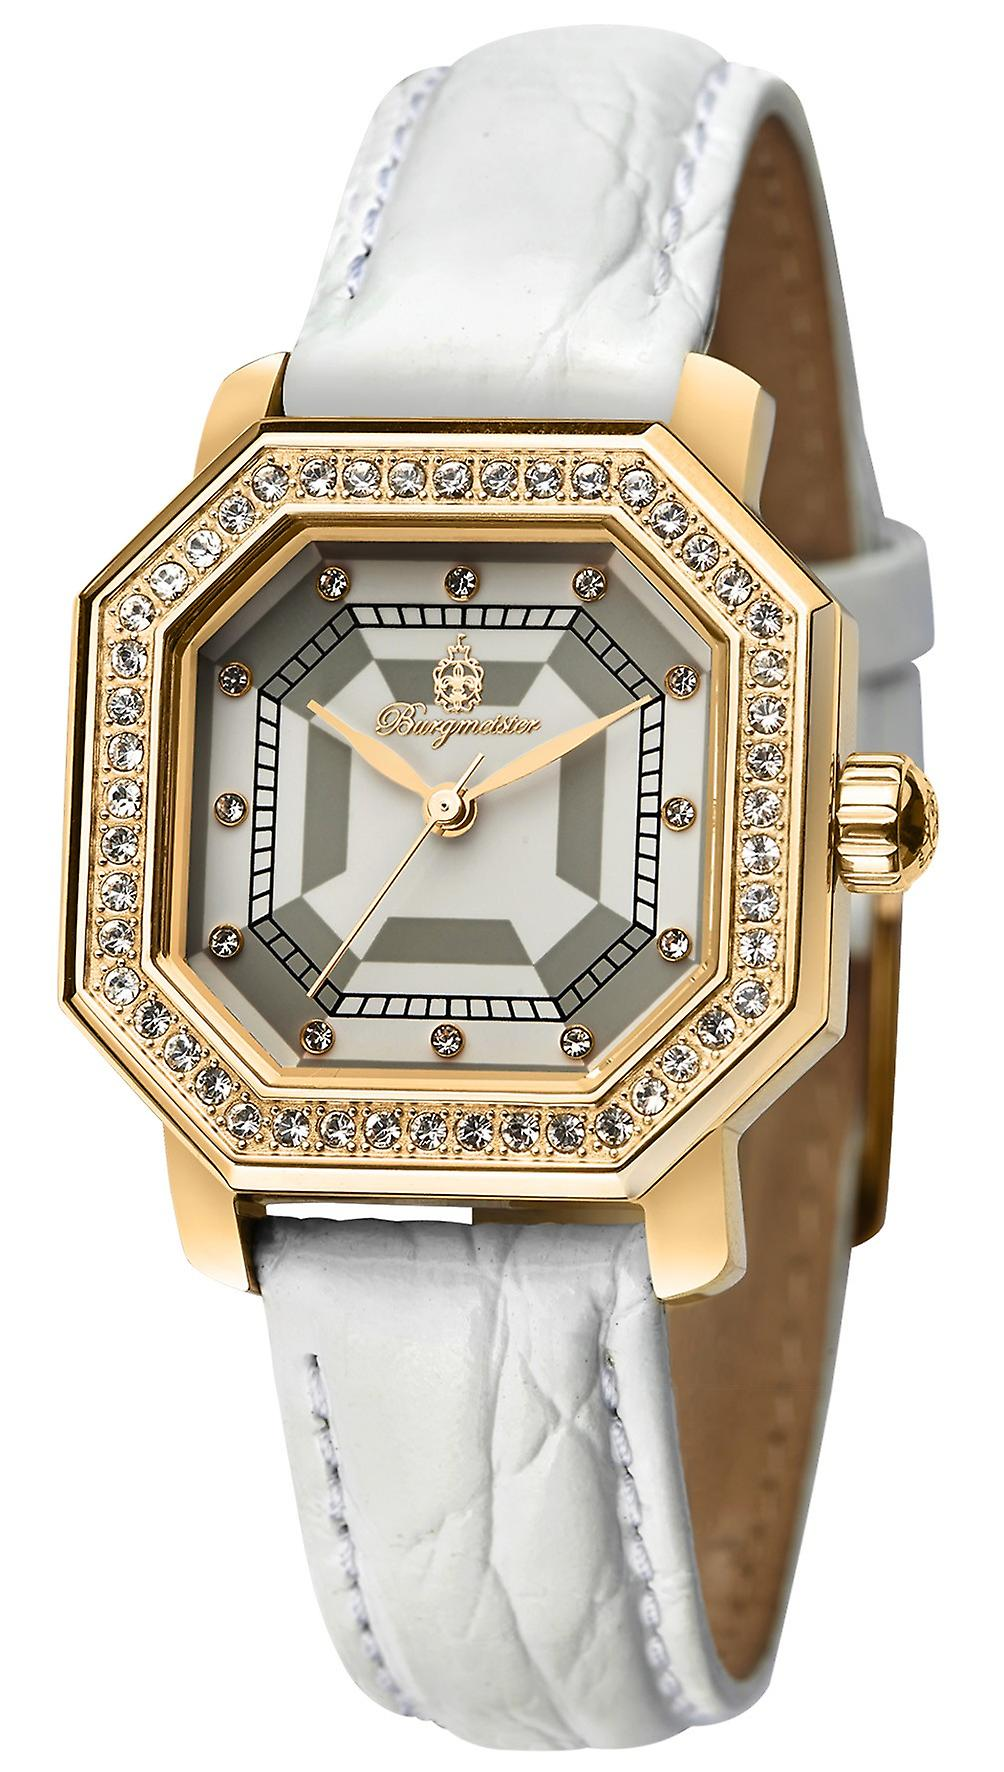 Burgmeister Ladies Quartz Watch Allinges BM168-286